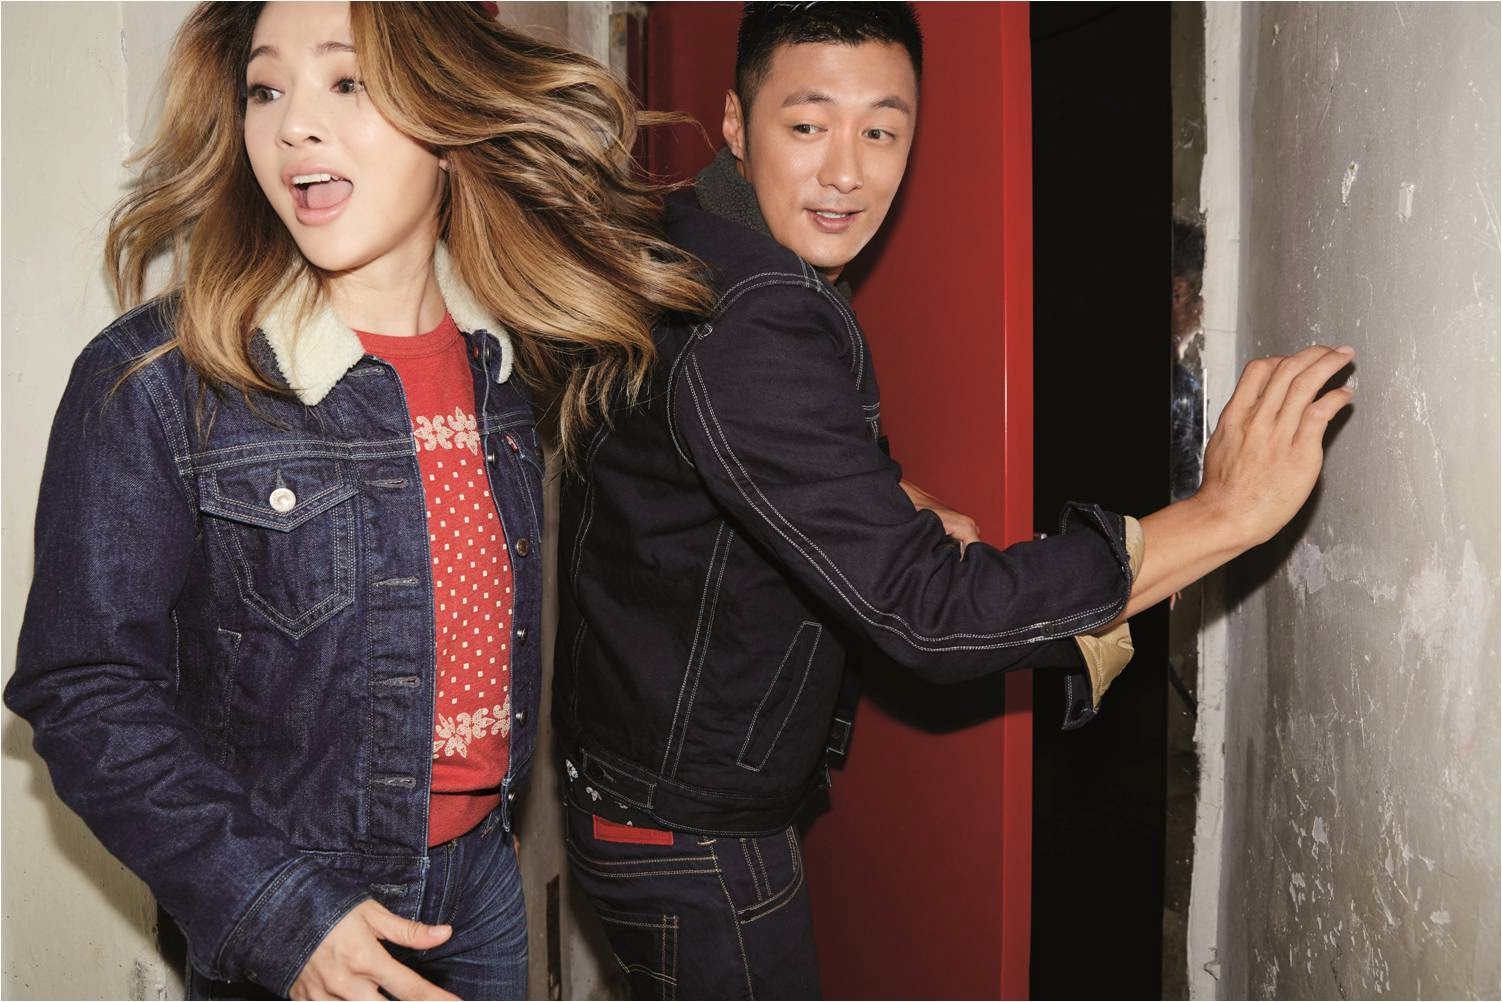 Live It Up with Levi's 2015 Chinese New Year Edition, Live It Up, Levi's Chinese New Year 2015 Edition, Levi's, Levi's Malaysia, Levi's Skinny Jeans, Shawn Yue, Ai Fei